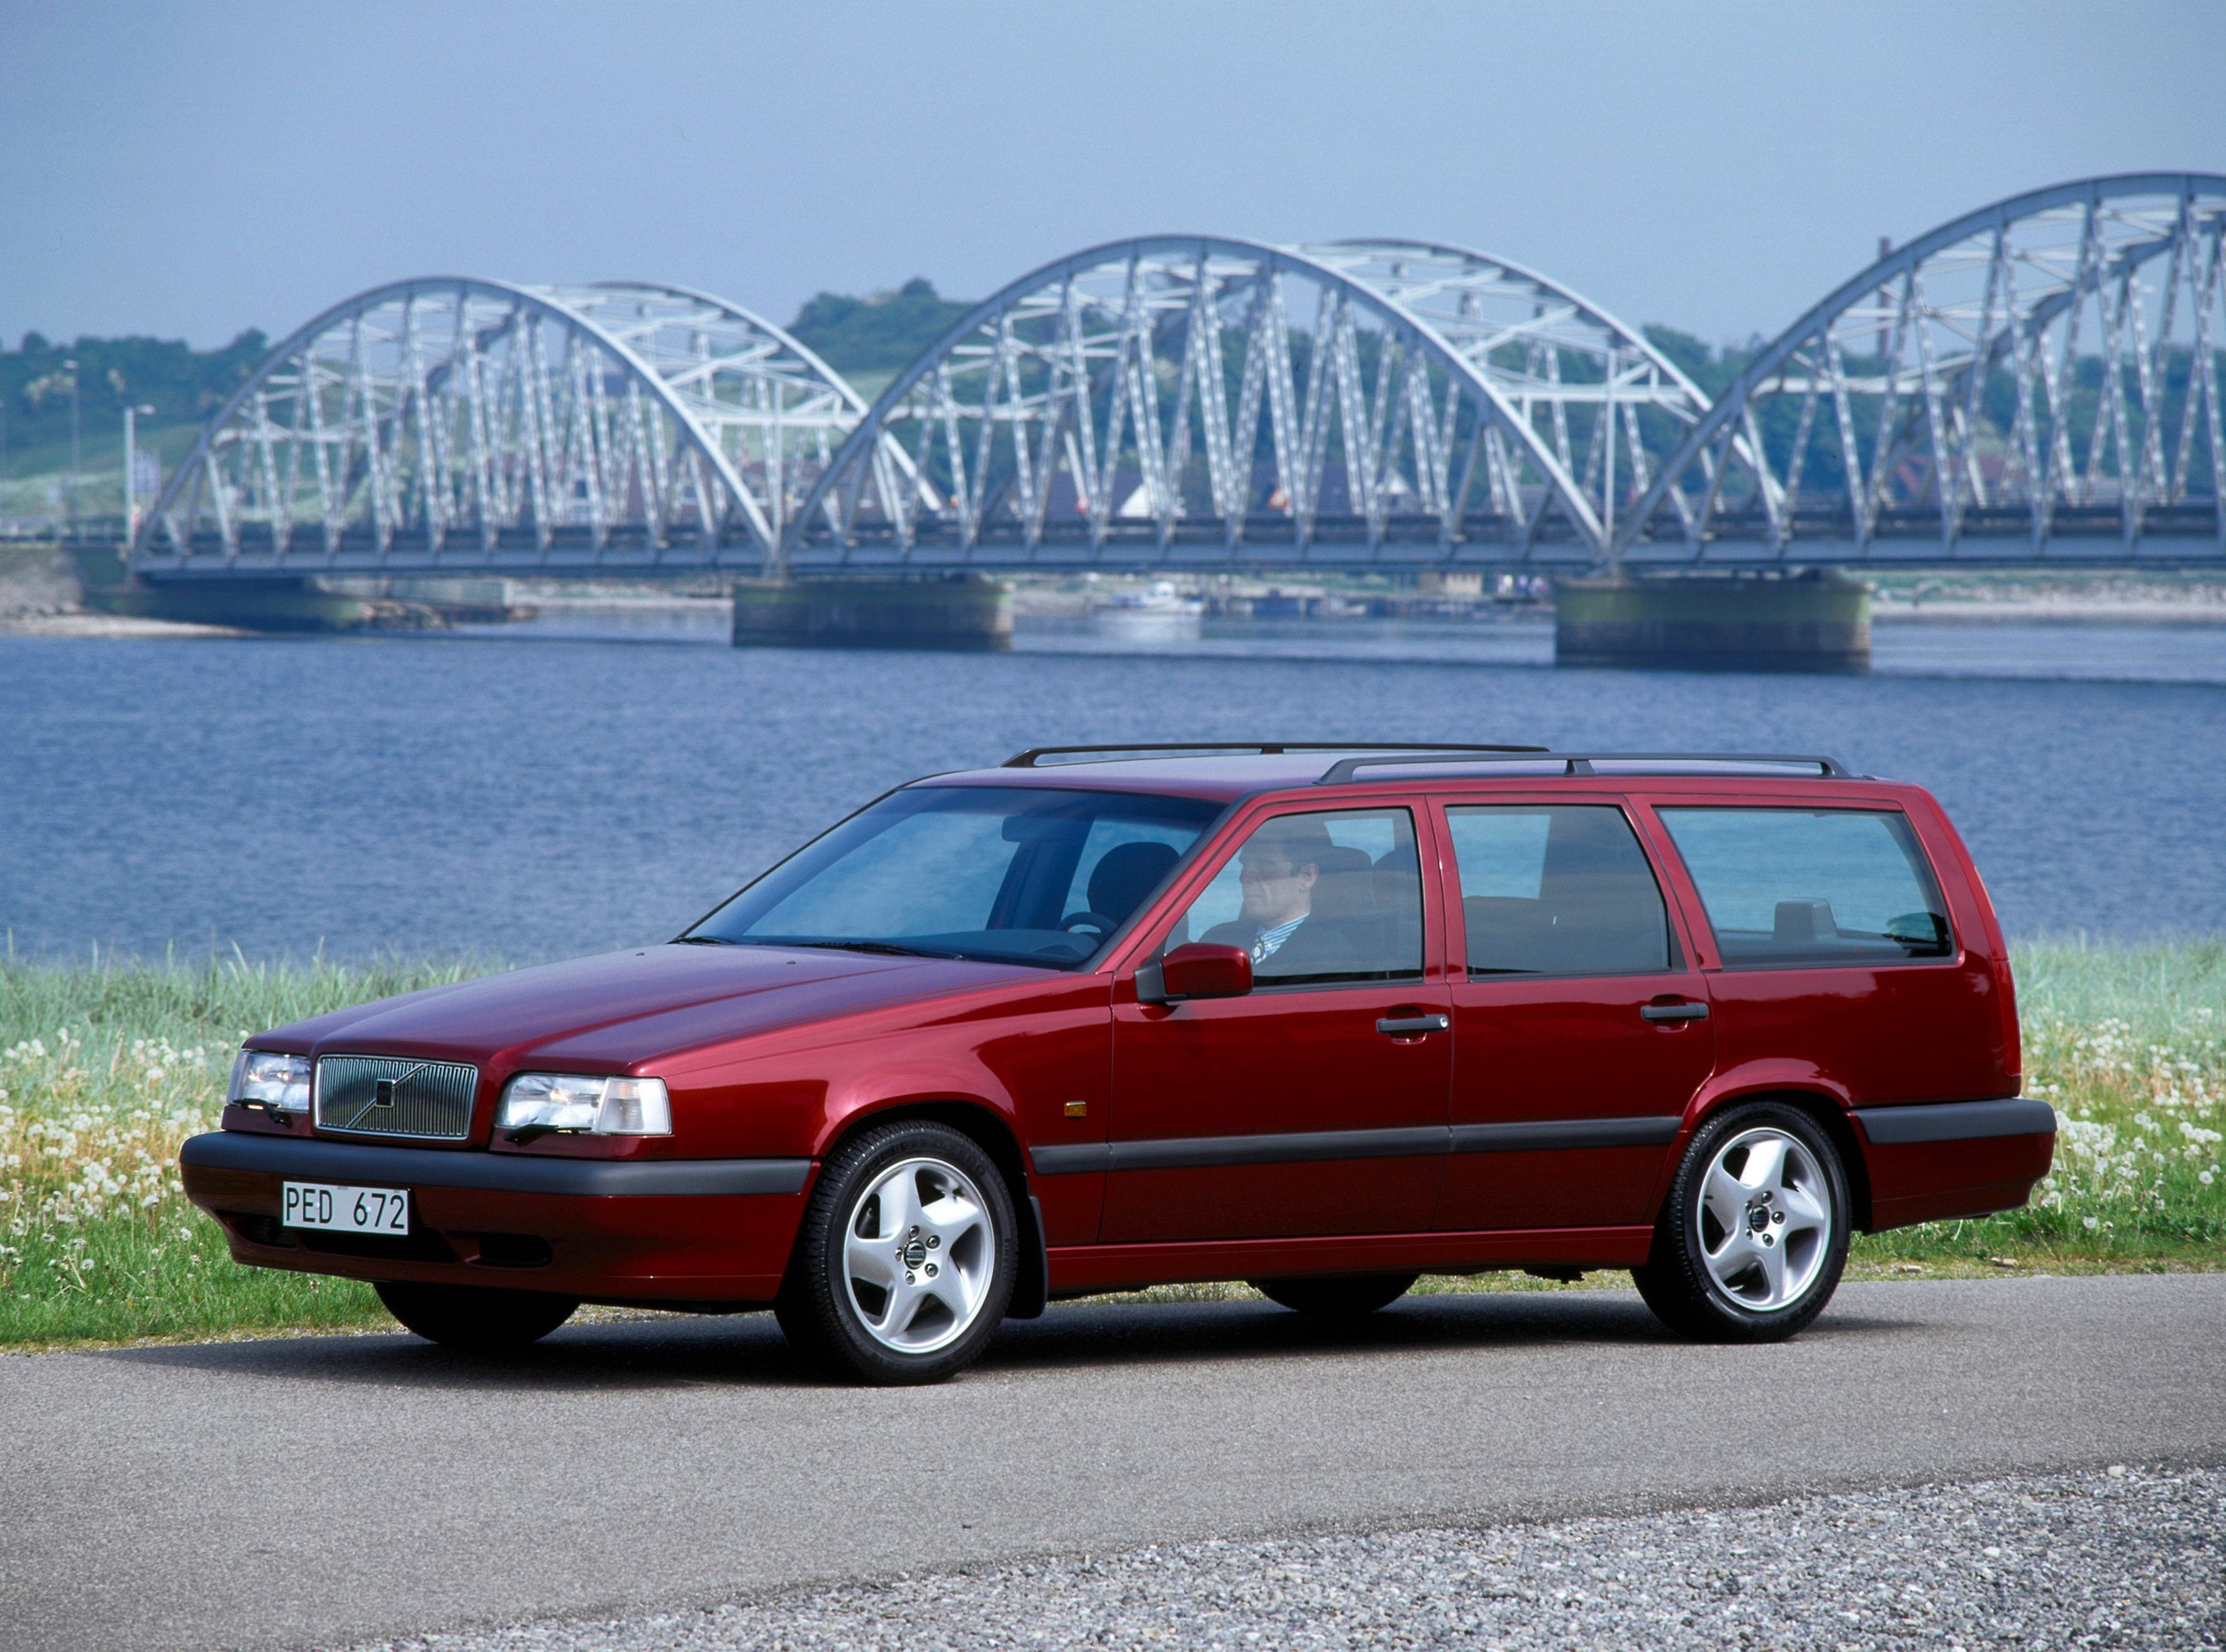 Volvo 850 -  850, 850 wagon, 1994, Exterior, Historical, Images